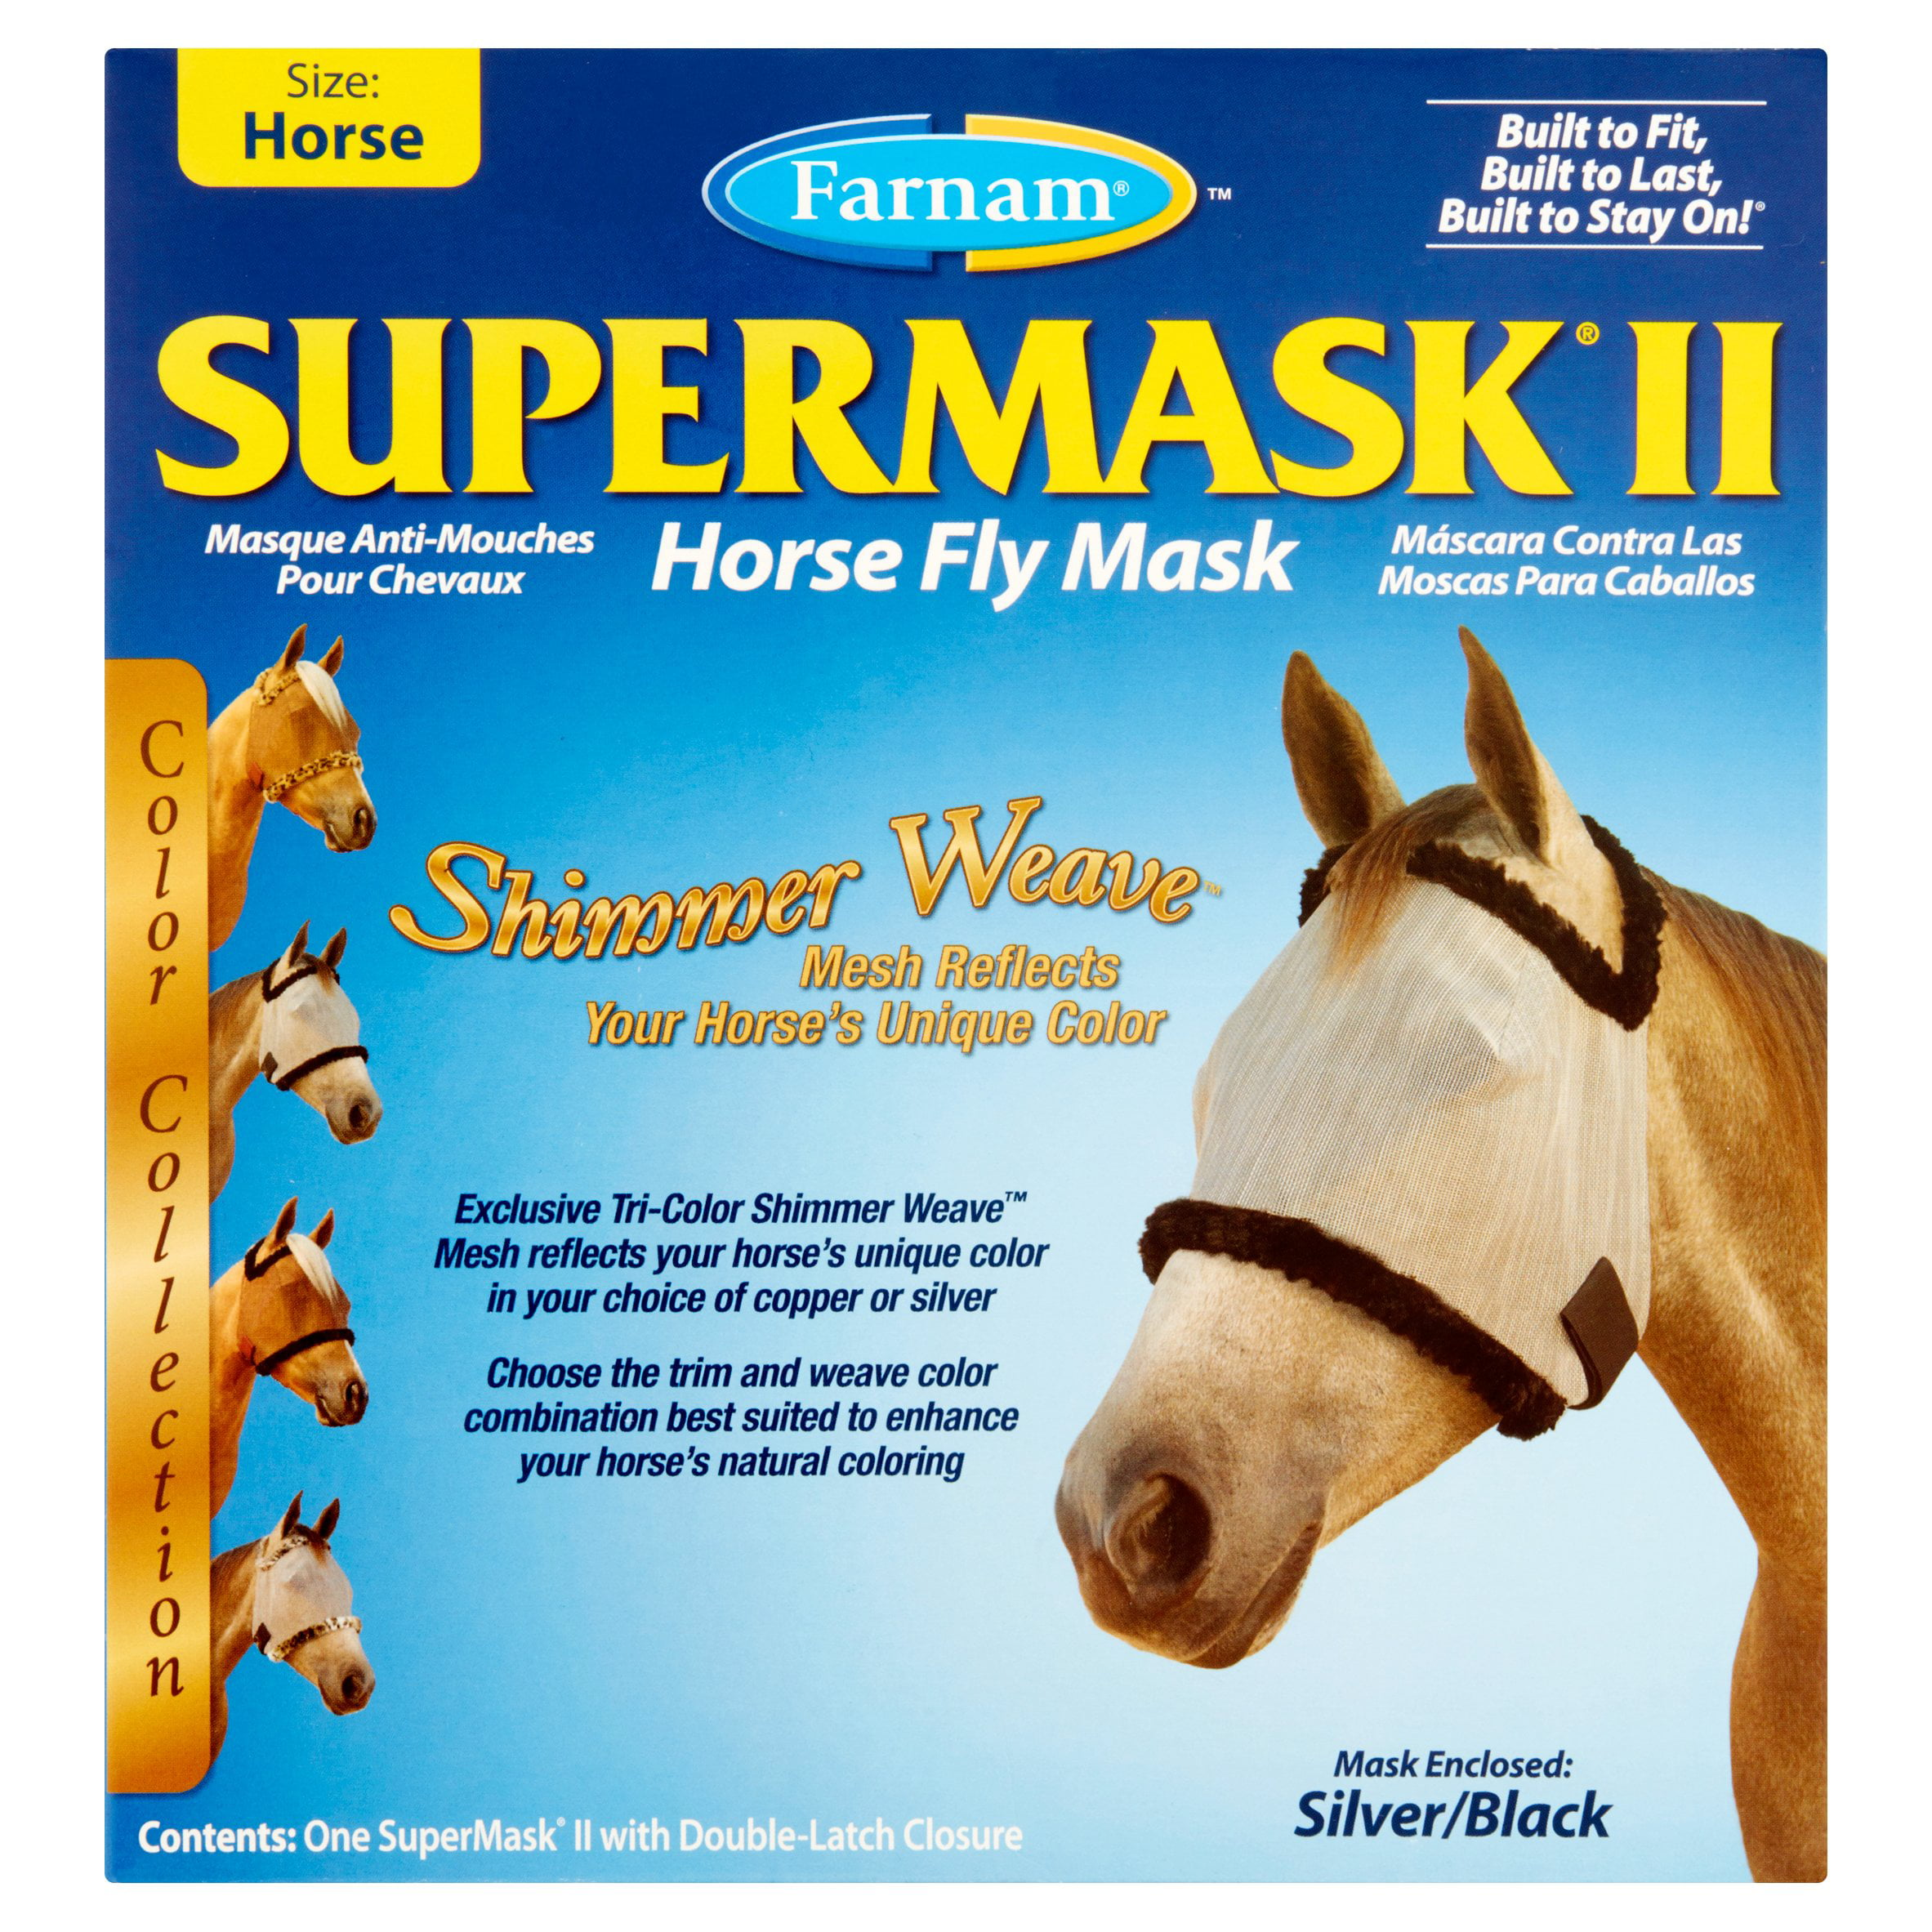 Farnam 100503737 Supermask Ii Without Ears by Farnam Horse Products A Division of Farnam Companies, Inc.